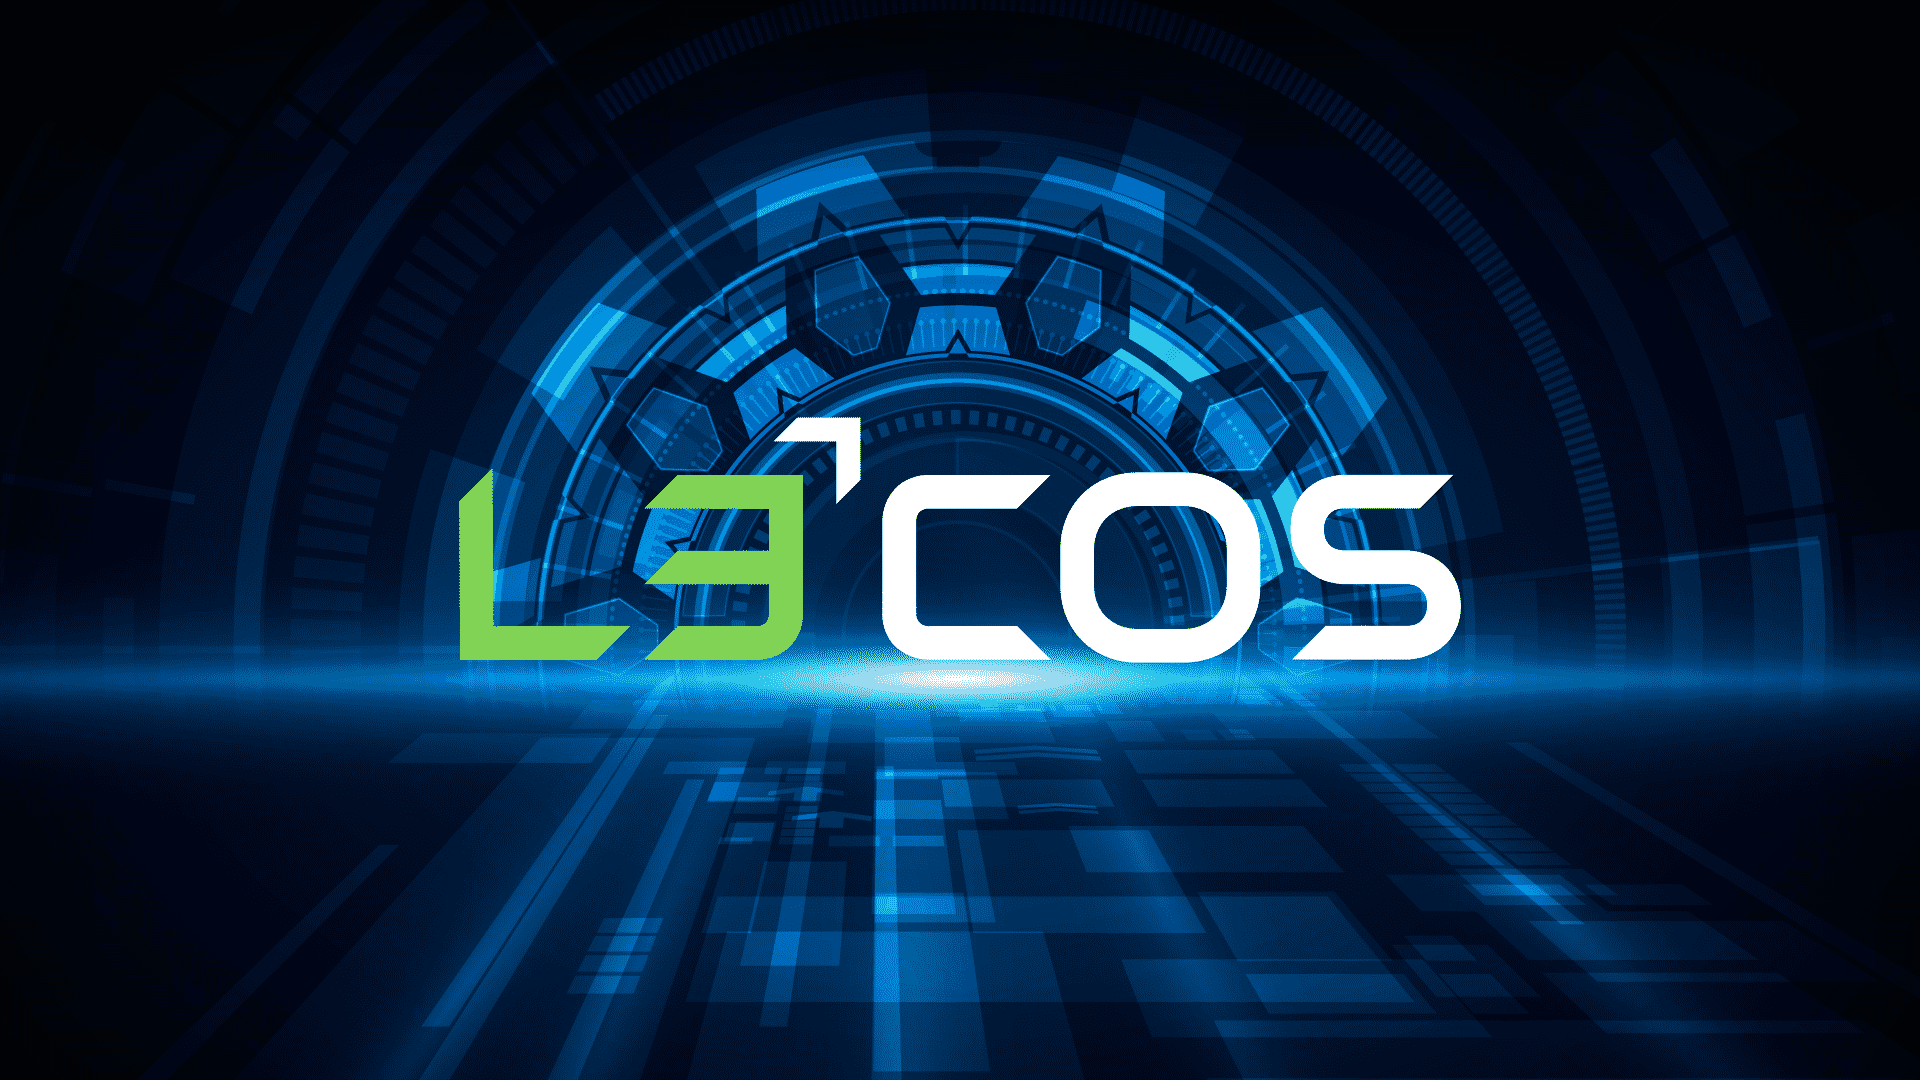 Ex-Softbank Executive Launches L3COS